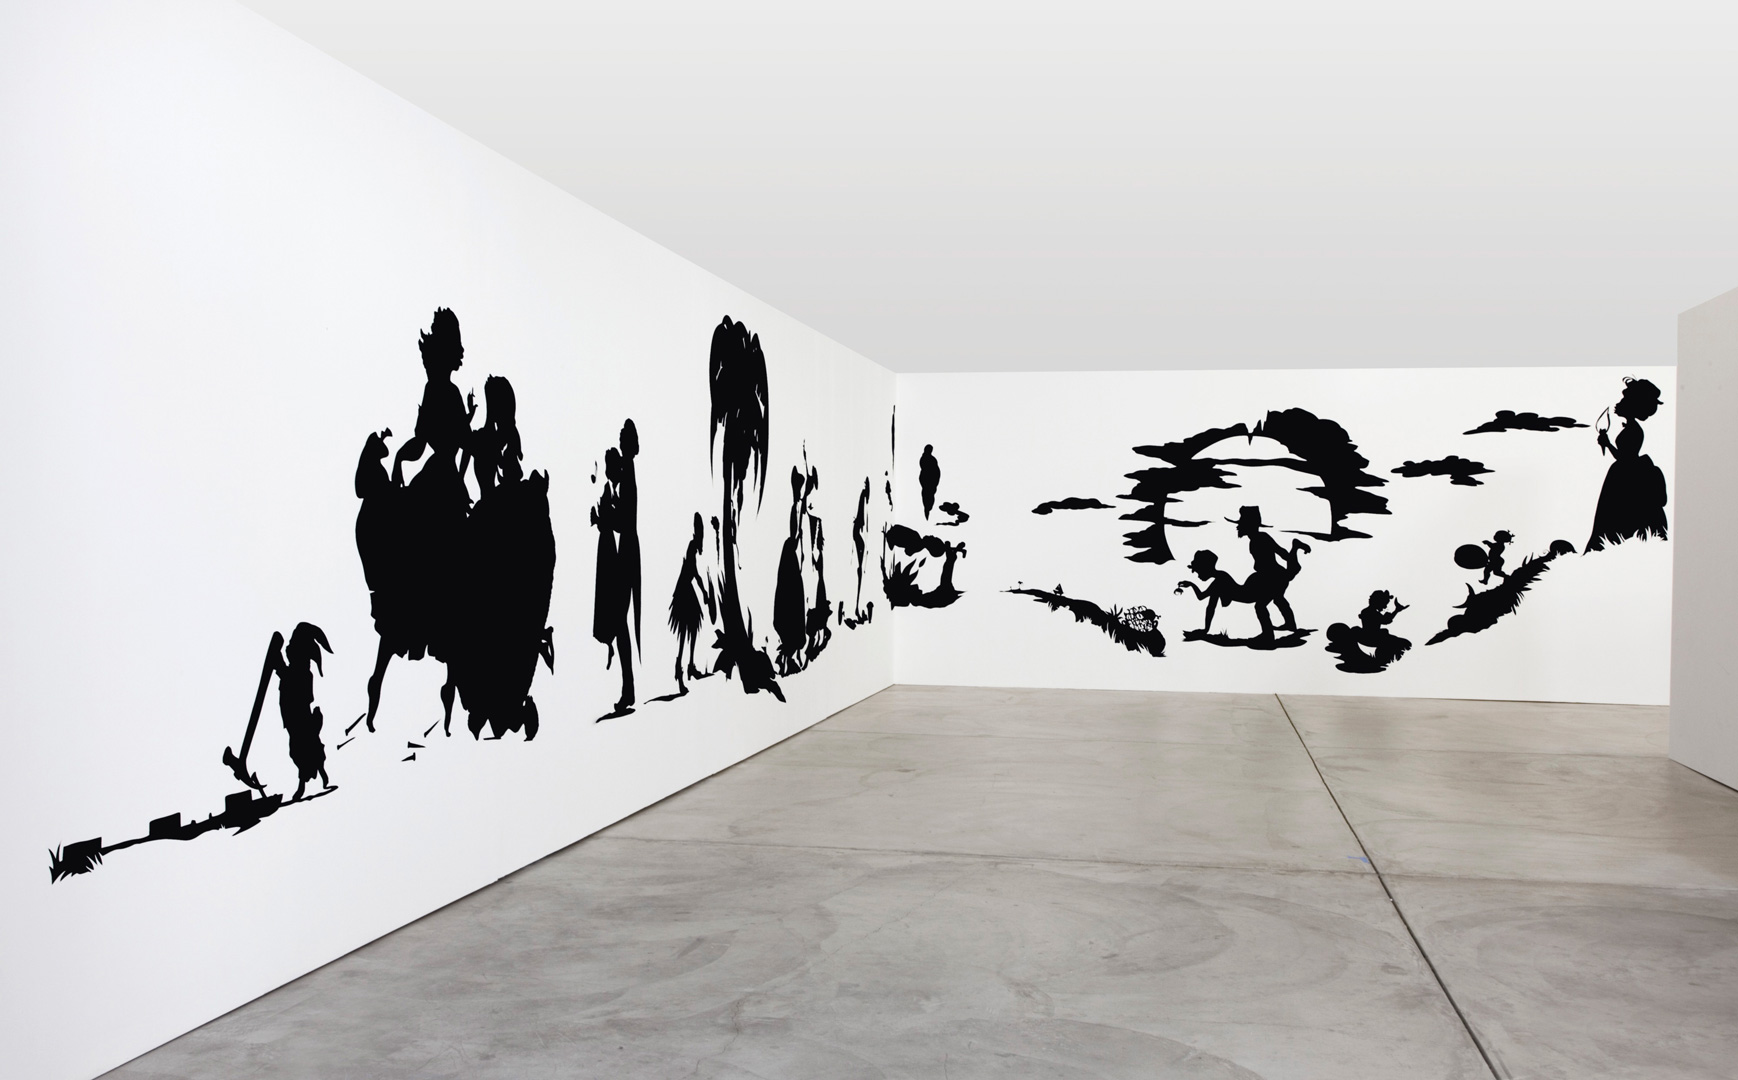 Kara Walker, Darkytown Rebellion - Lessons - Tes Teach